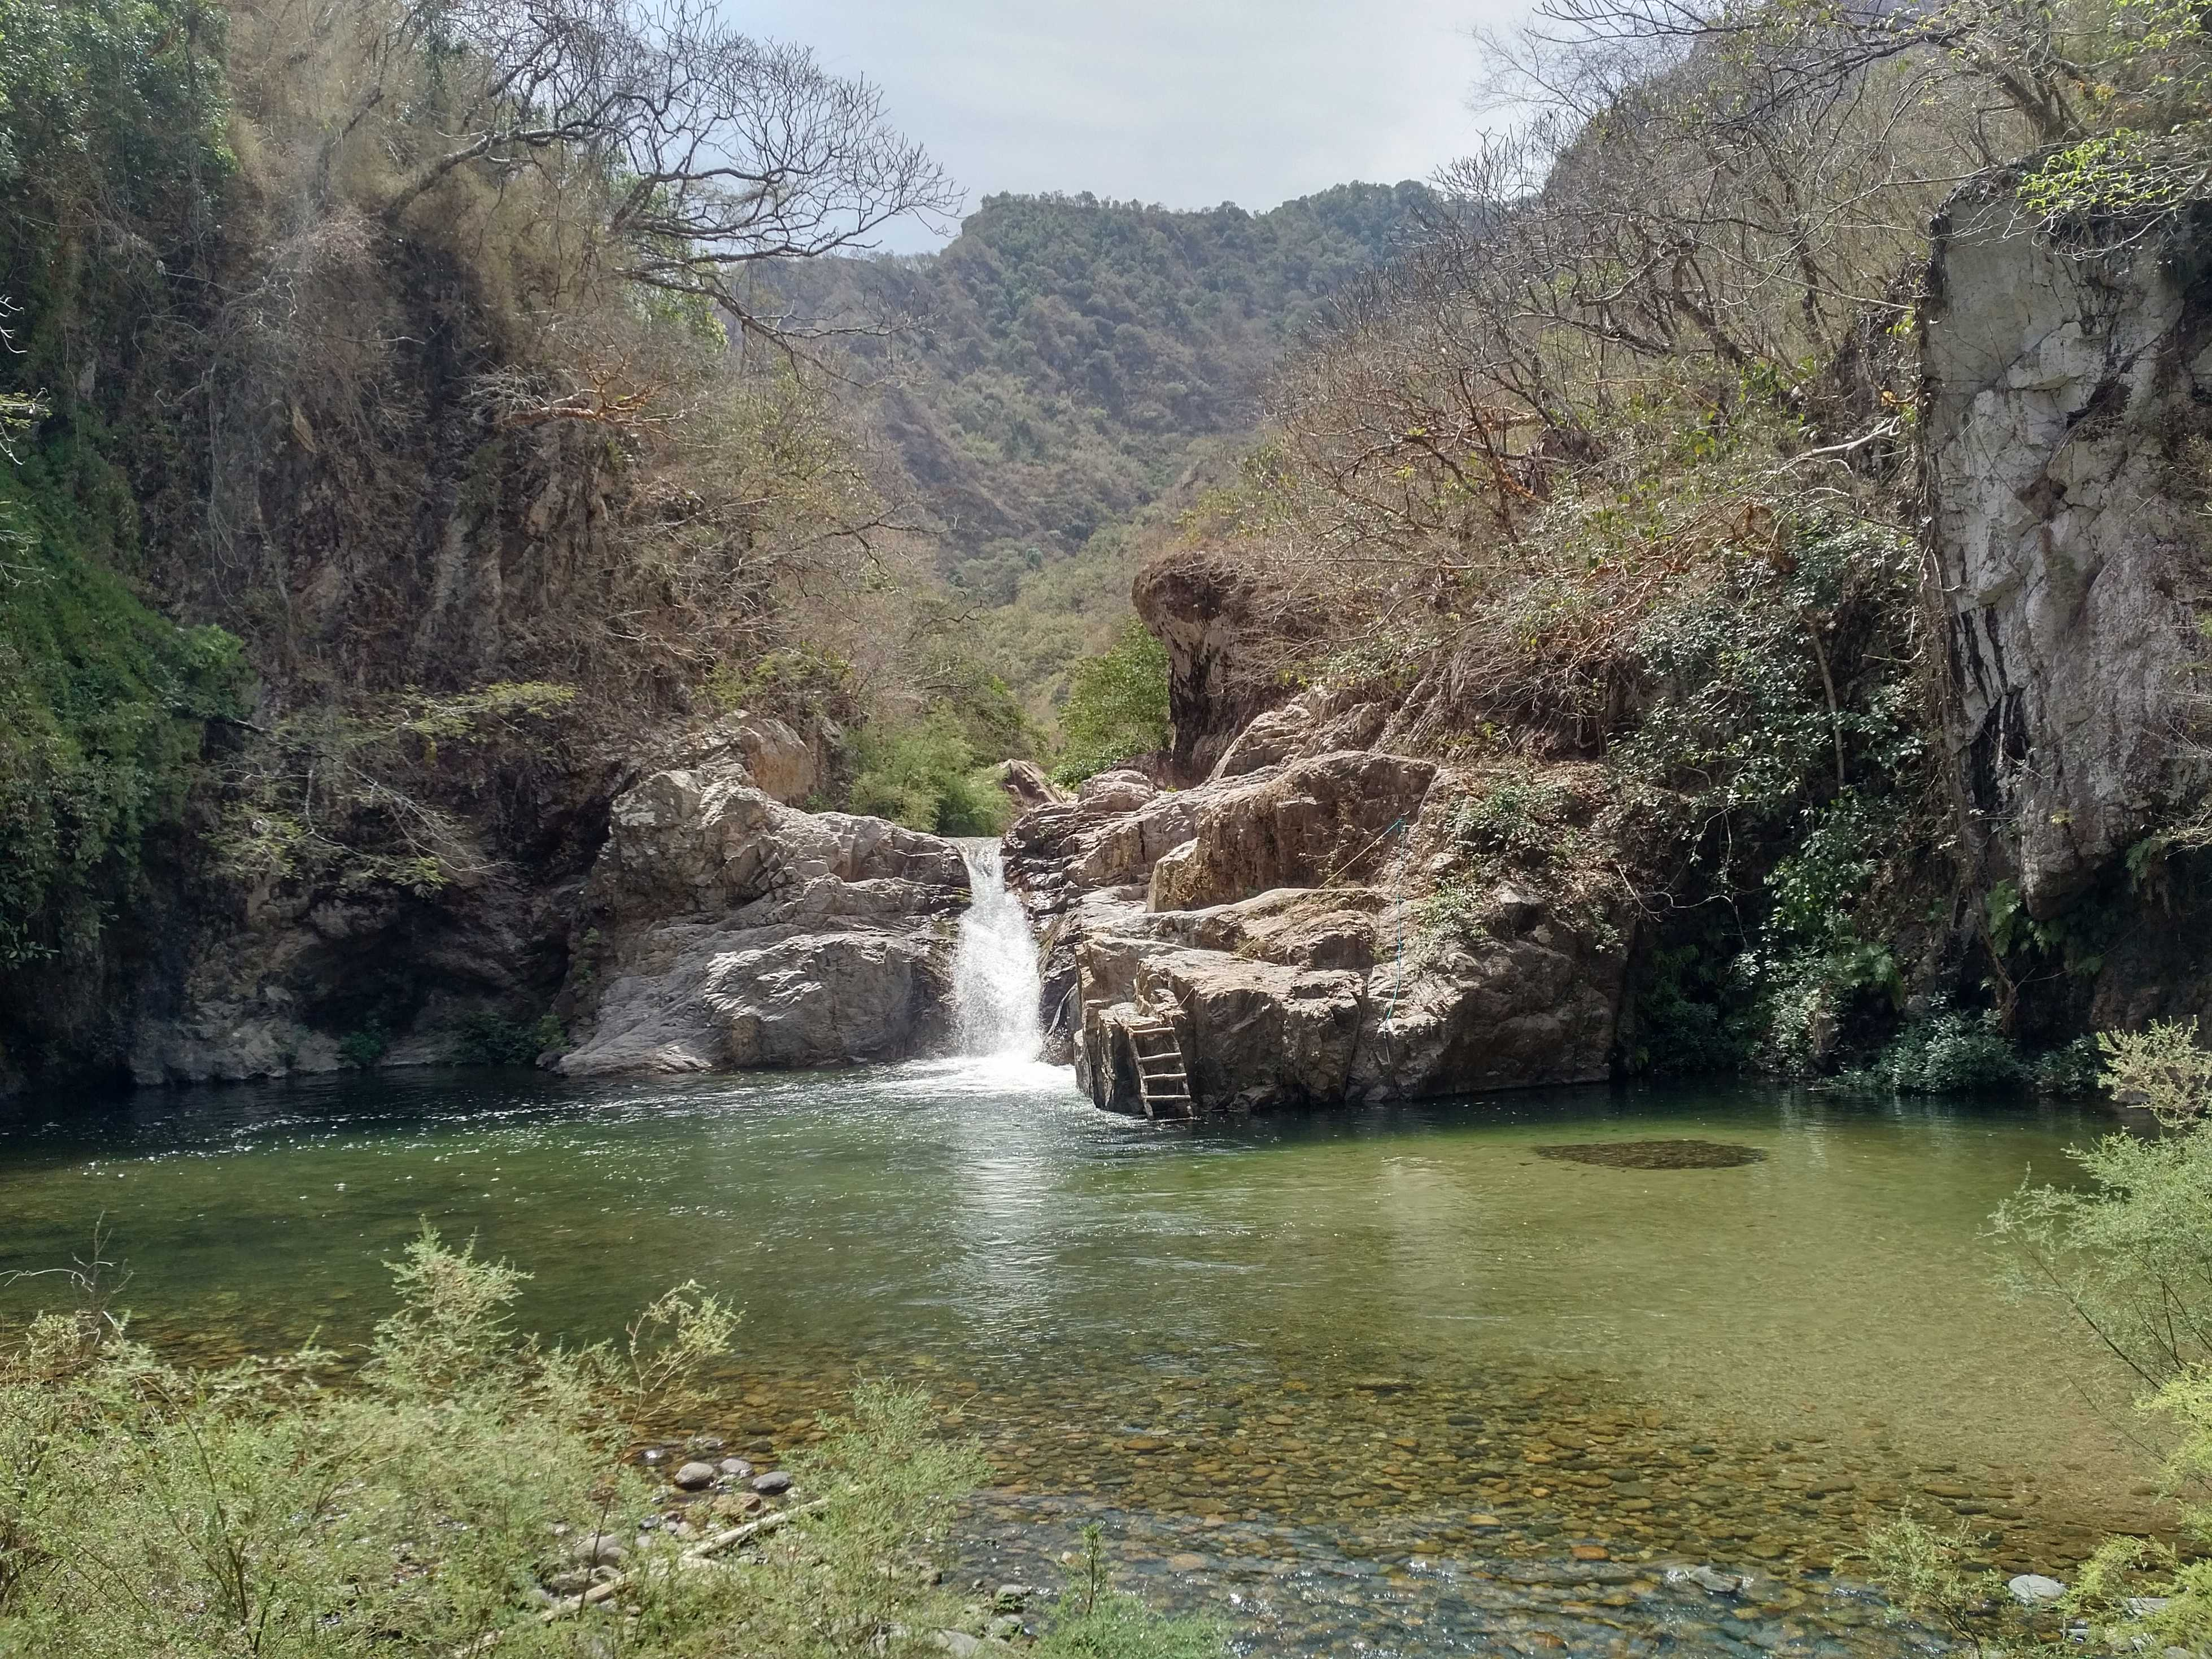 Waterfall in the Sierra Madre mountains